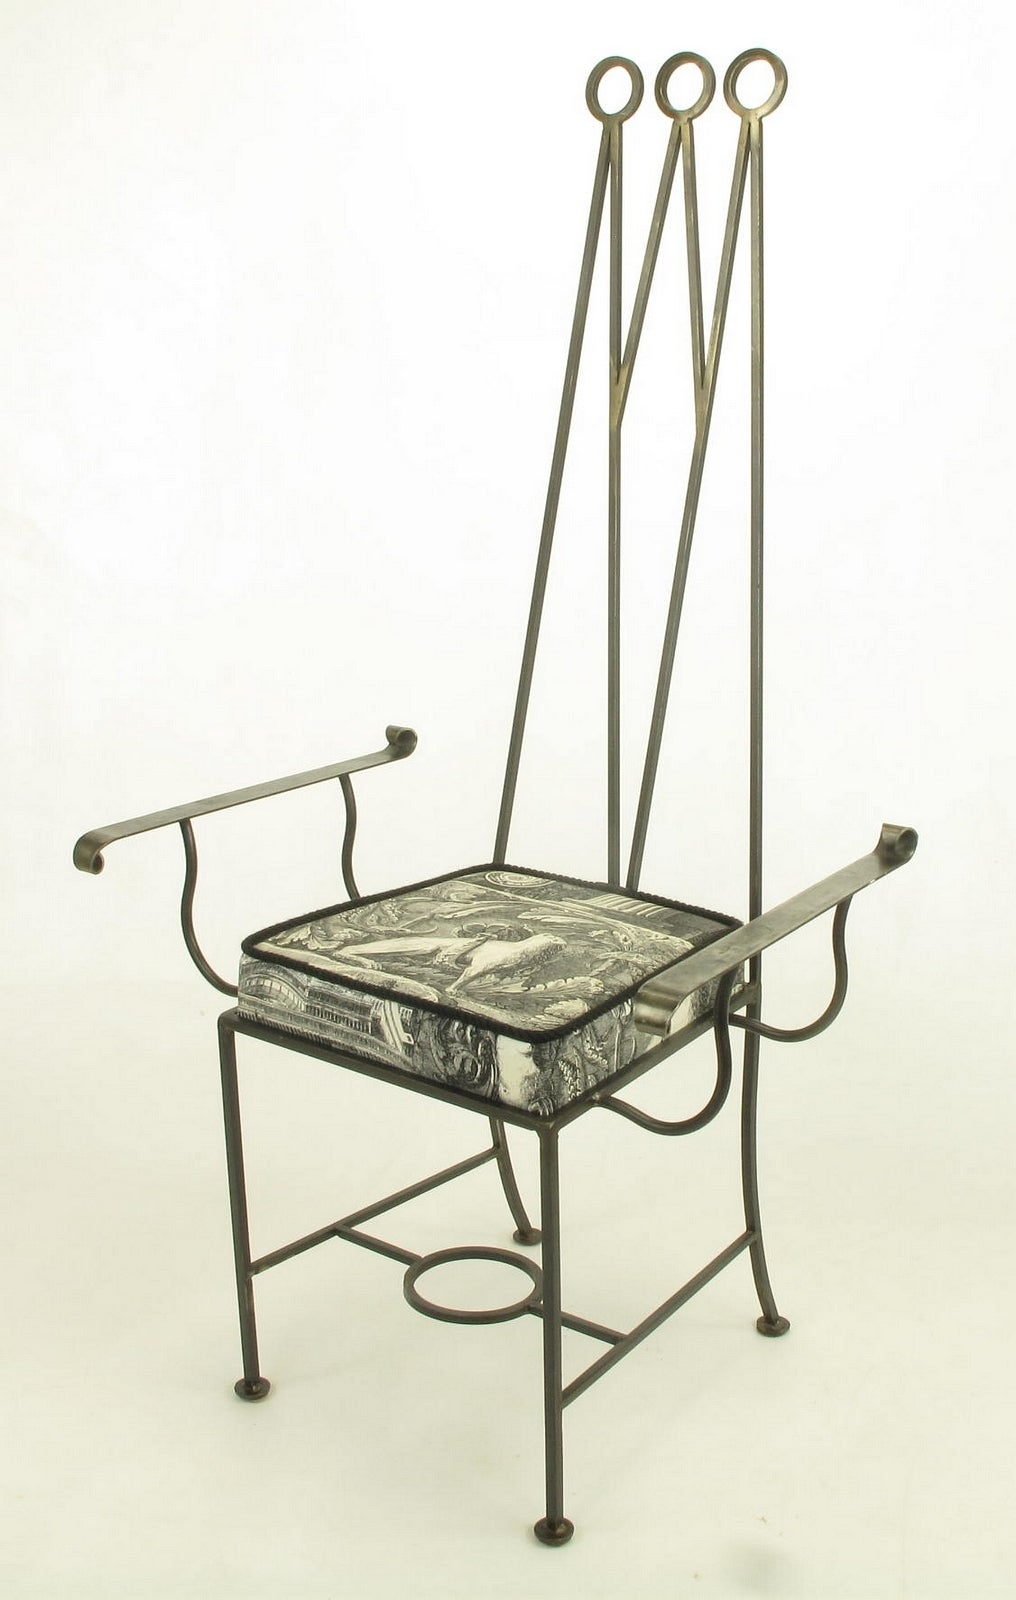 Upholstery Set of Eight Blackened, Wrought Iron, Tall